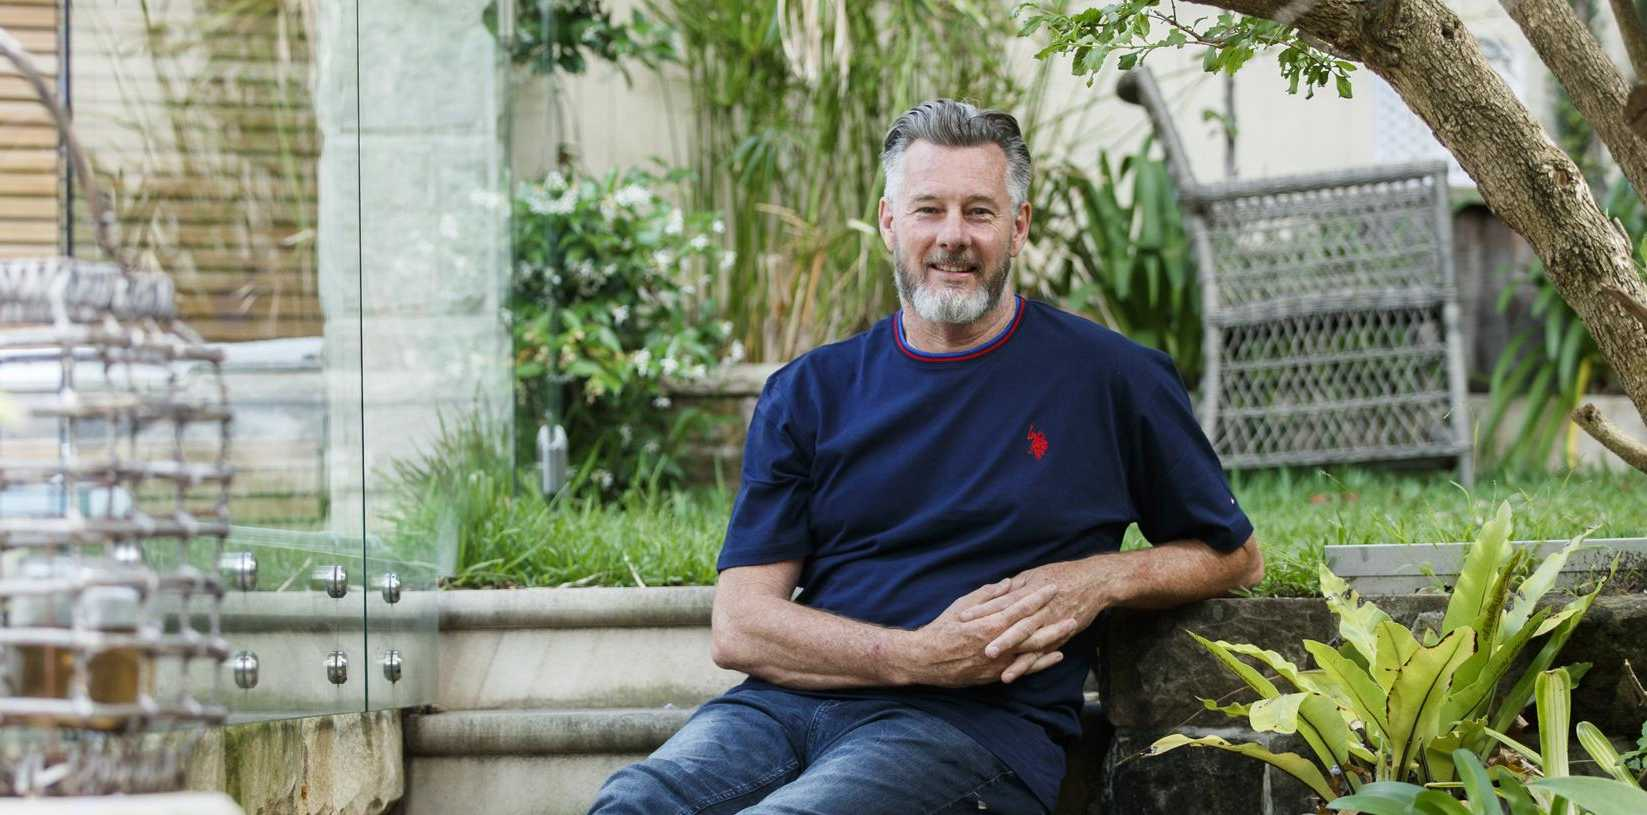 Barry Du Bois has teamed up with The Prince of Wales Hospital Foundation to create Australia's first Cancer Survivorship Garden at the hospital.